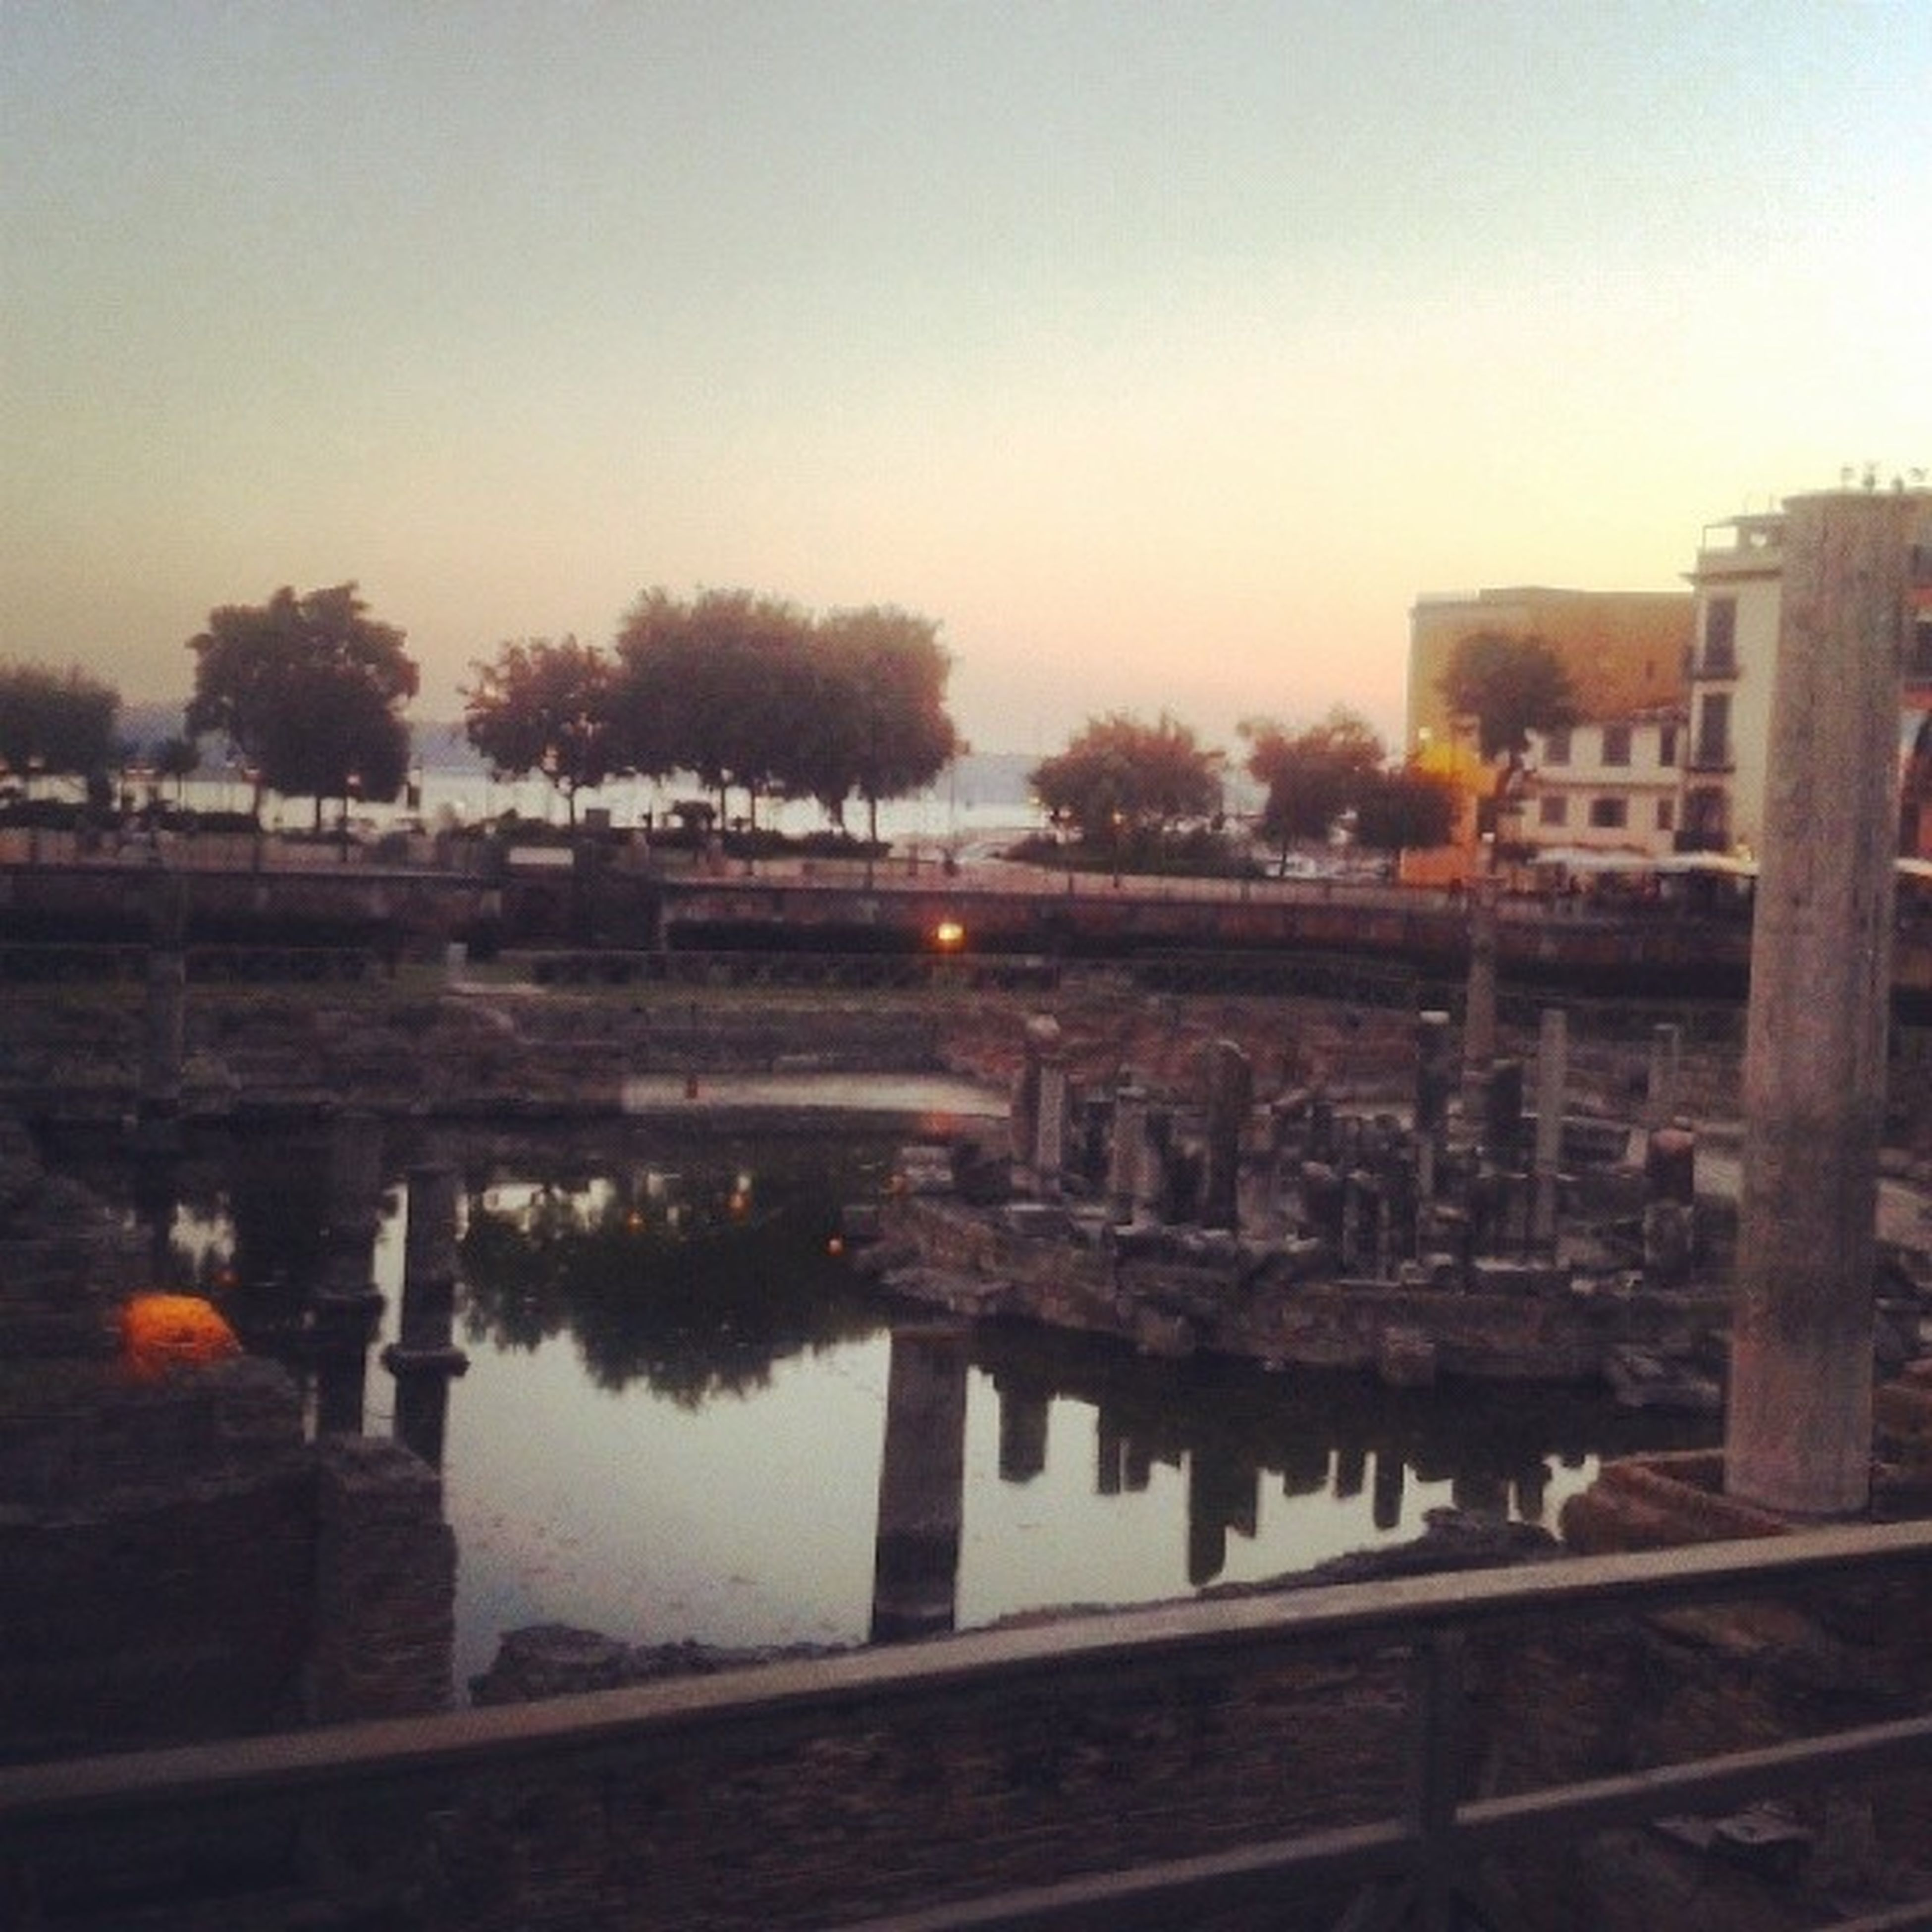 water, reflection, built structure, architecture, building exterior, clear sky, lake, river, standing water, sunset, sky, canal, tree, nature, dusk, outdoors, waterfront, season, city, copy space